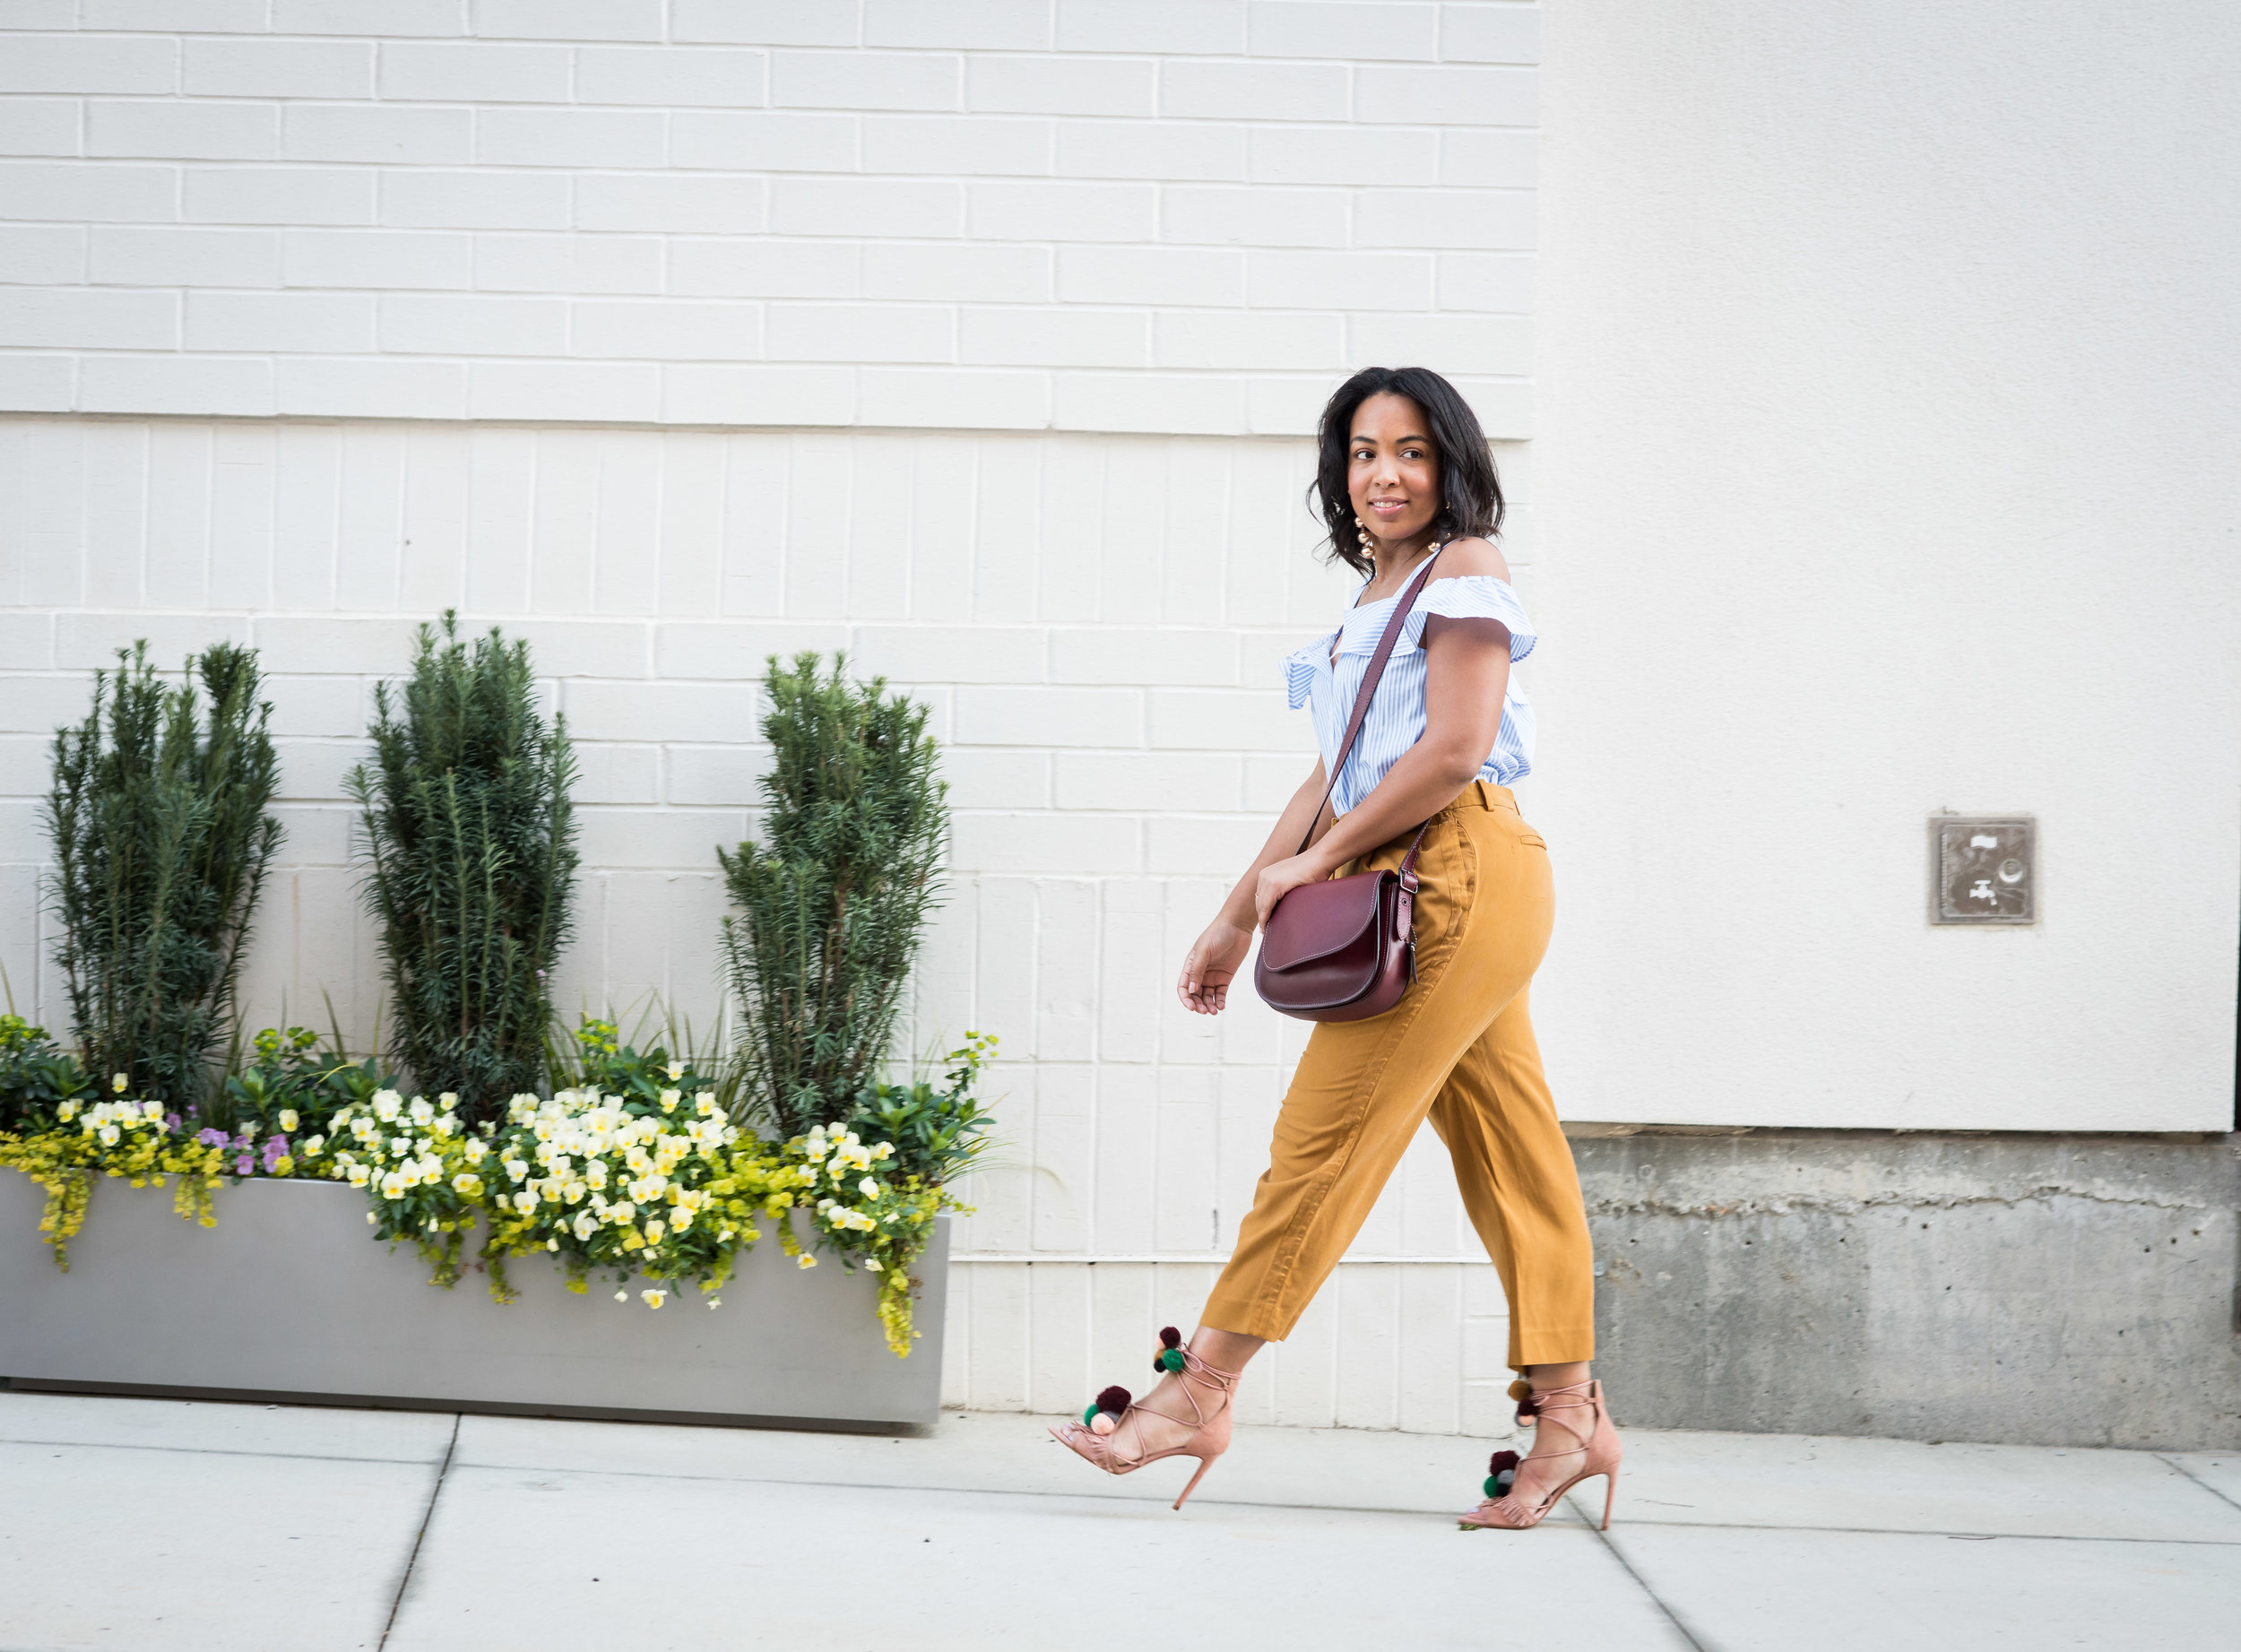 5-belk-crown-and-ivy-robinson-style-spring-fashion.JPG